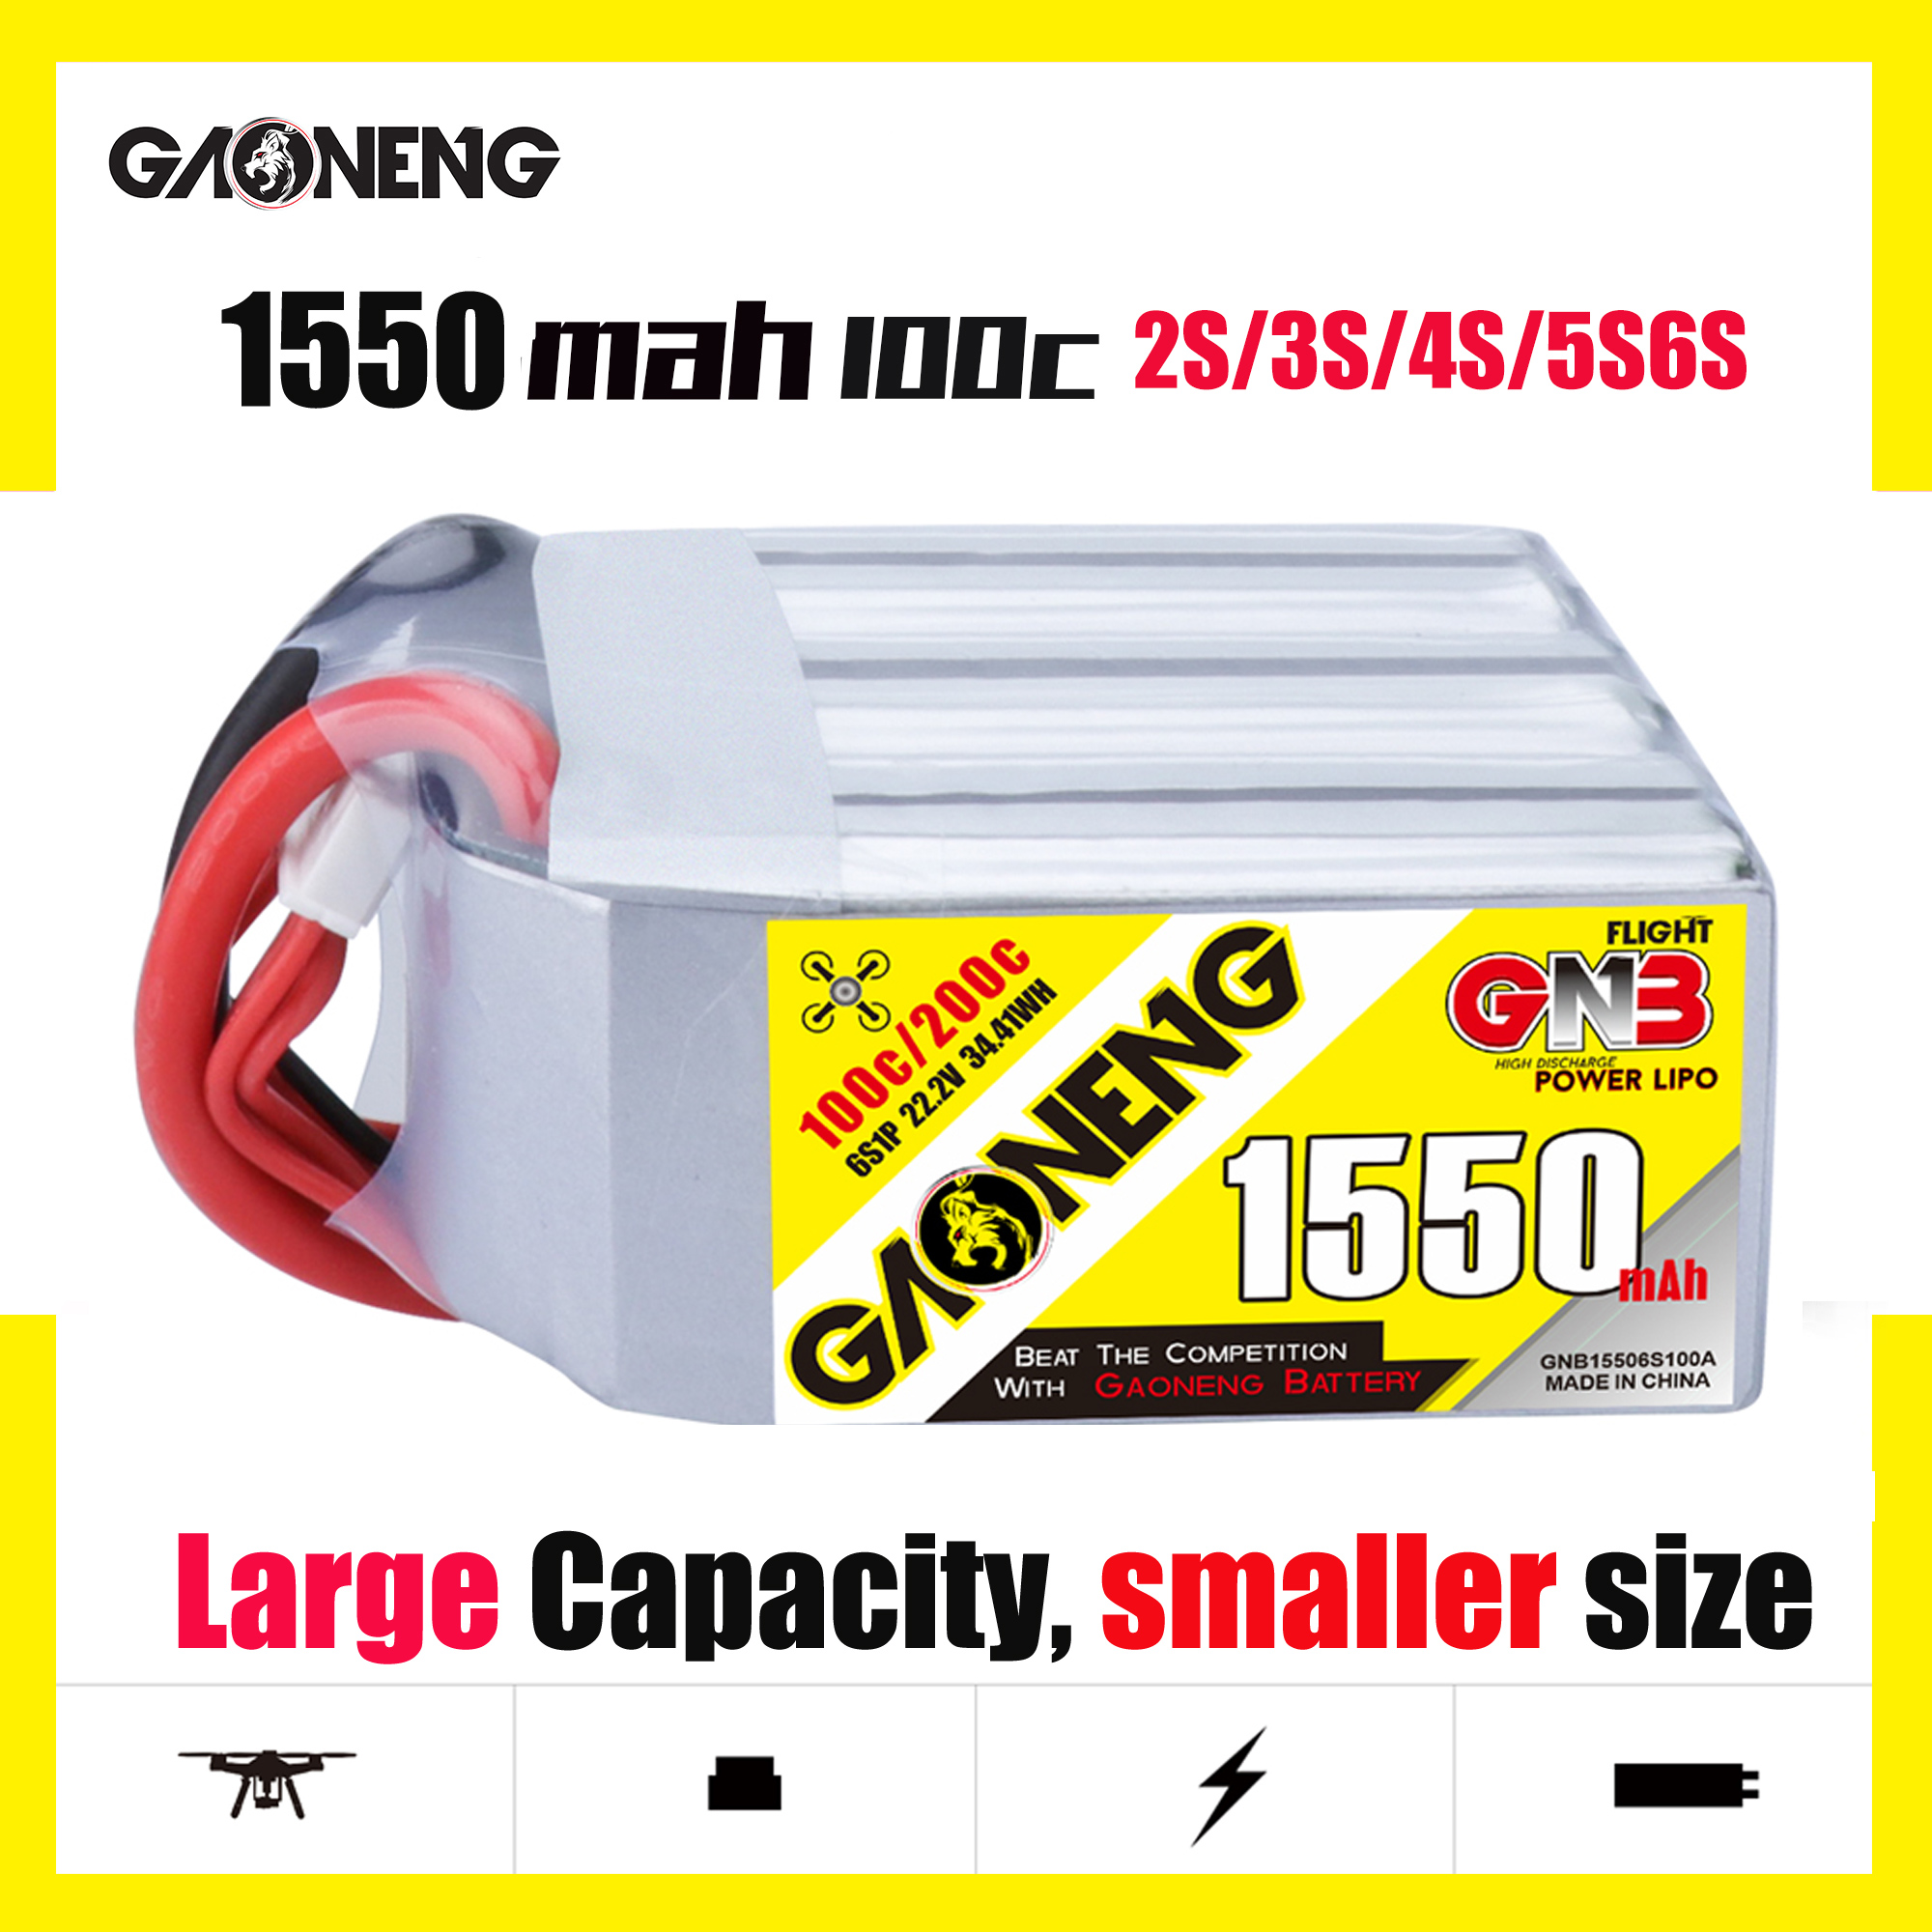 Gaoneng GNB 1550mAh 100C 2P 2S 3S 4S 5S 6S 4-axis FPV Battery 7.4V-22.2V High Power Batteries Smaller Large Capacity image